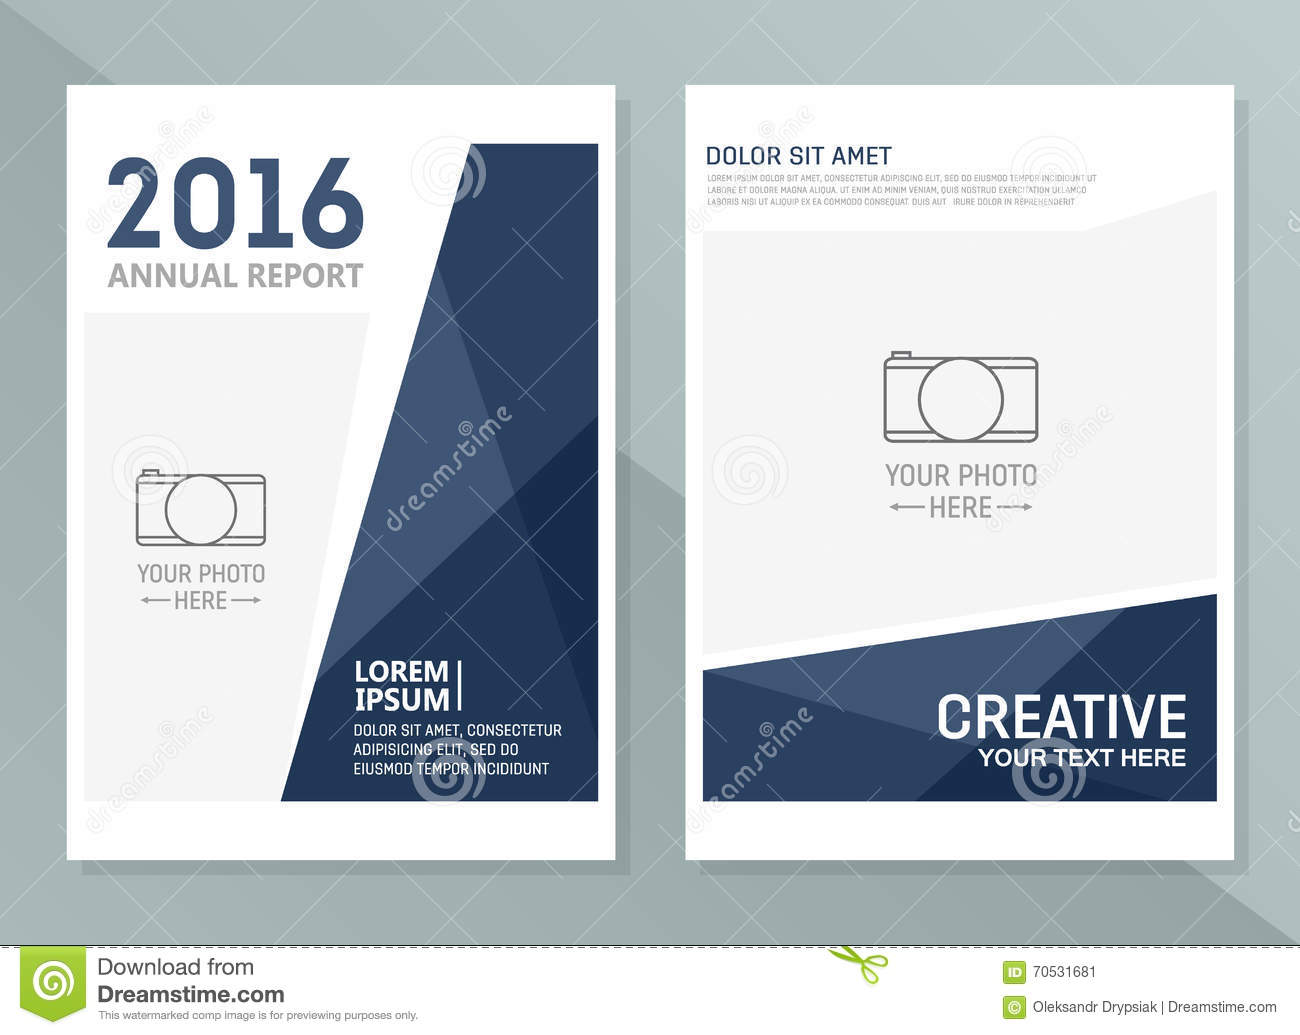 Vector annual report design templates. Business brochure, flyer